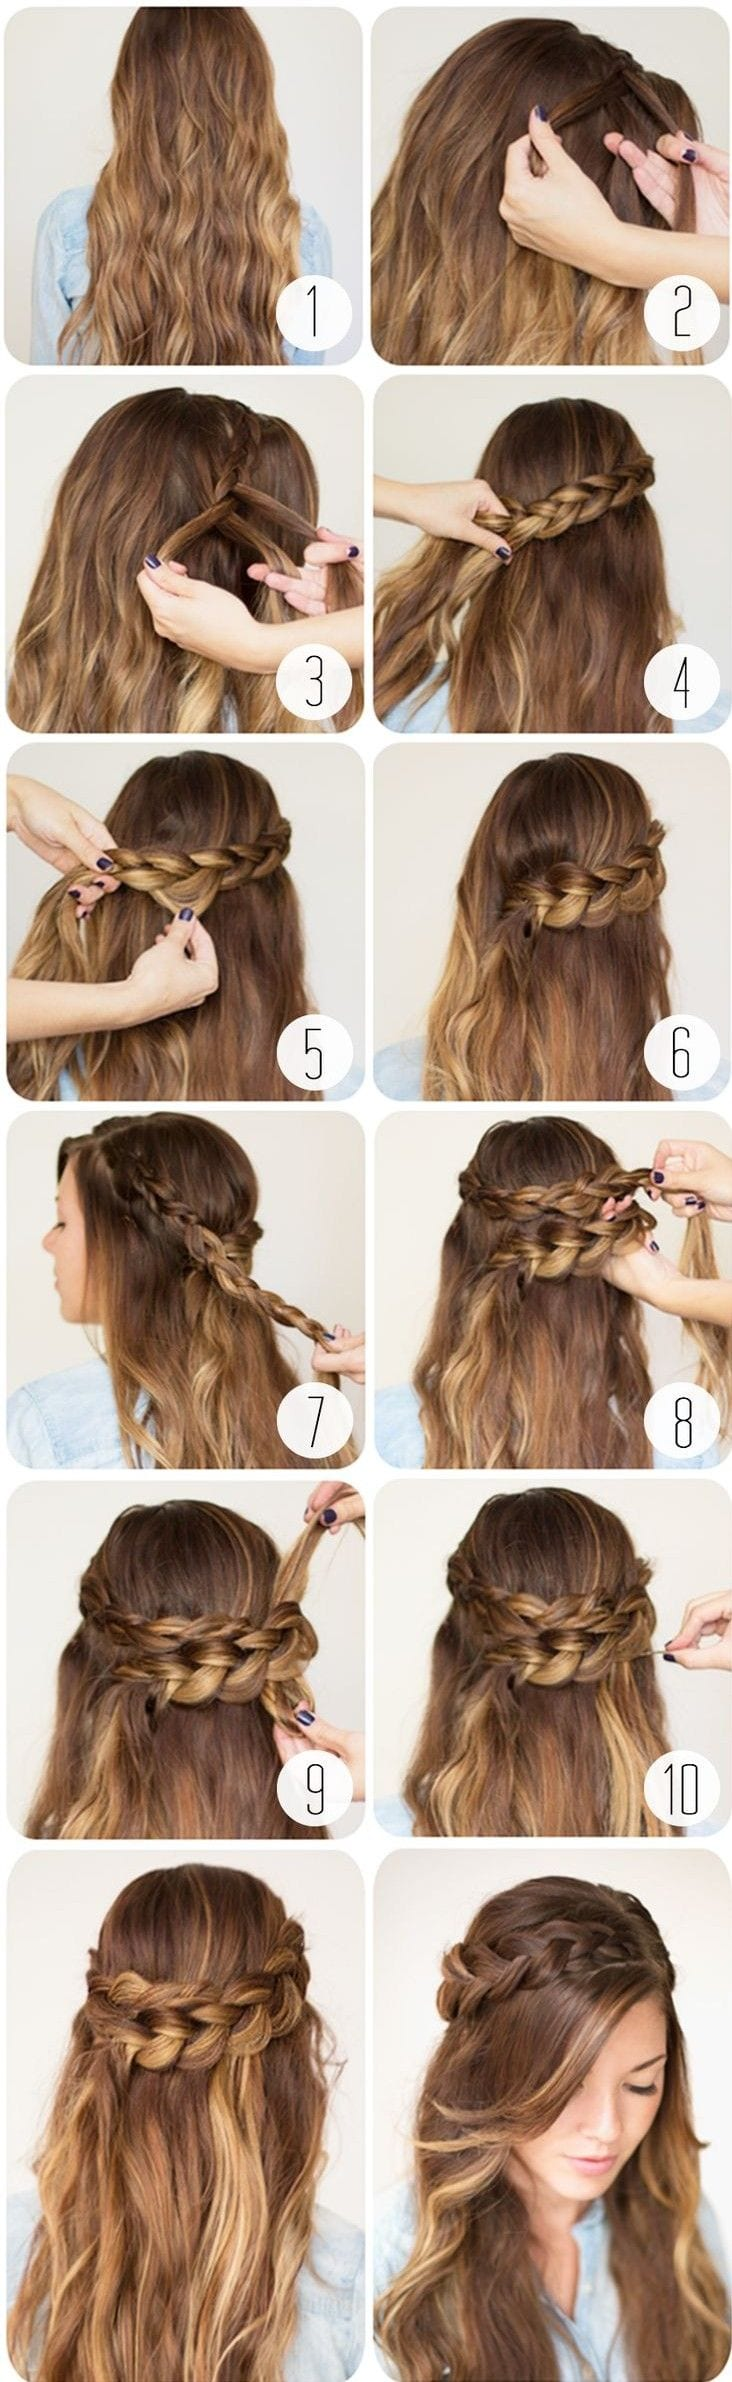 different-braids-tutorials 20 Cute and Easy Braided Hairstyle Tutorials